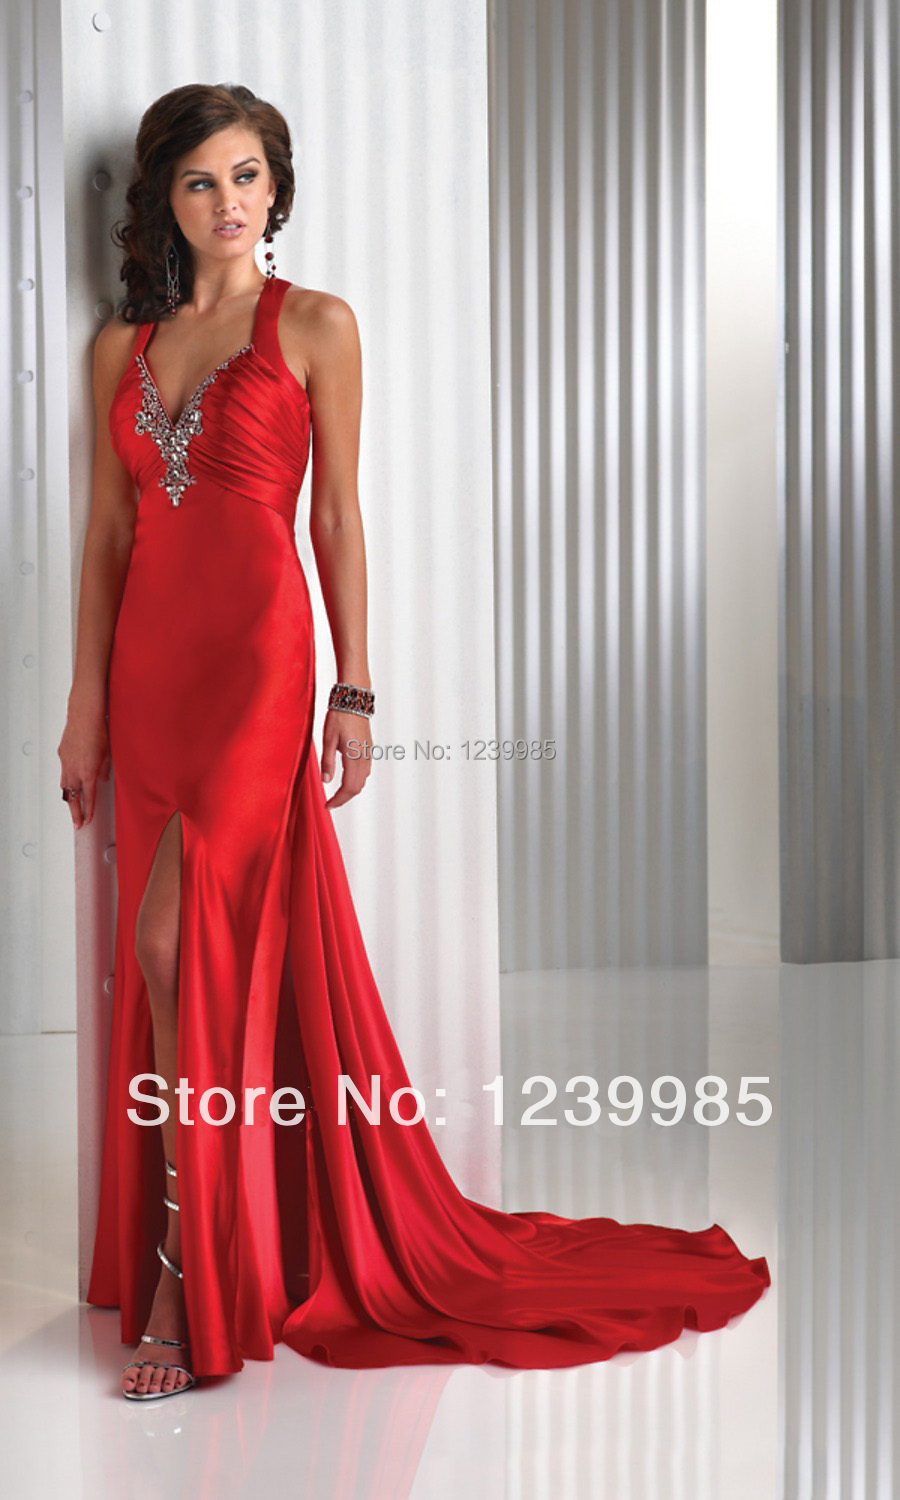 Made in America Formal Dresses